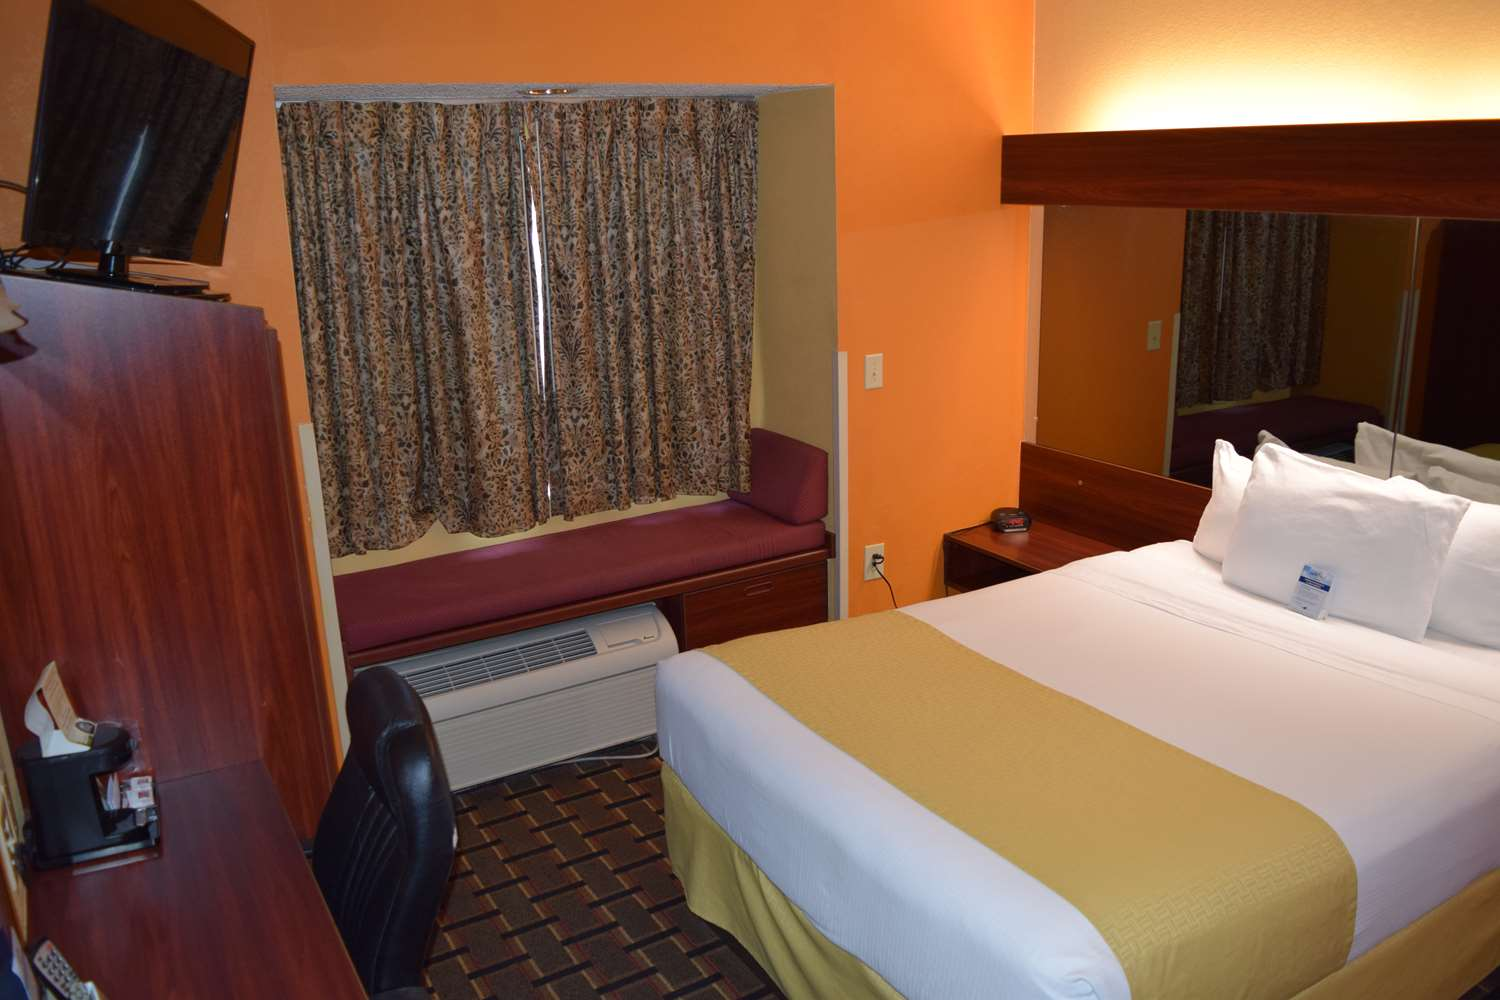 Microtel Inn & Suites by Wyndham Rock Hill, SC - See Discounts